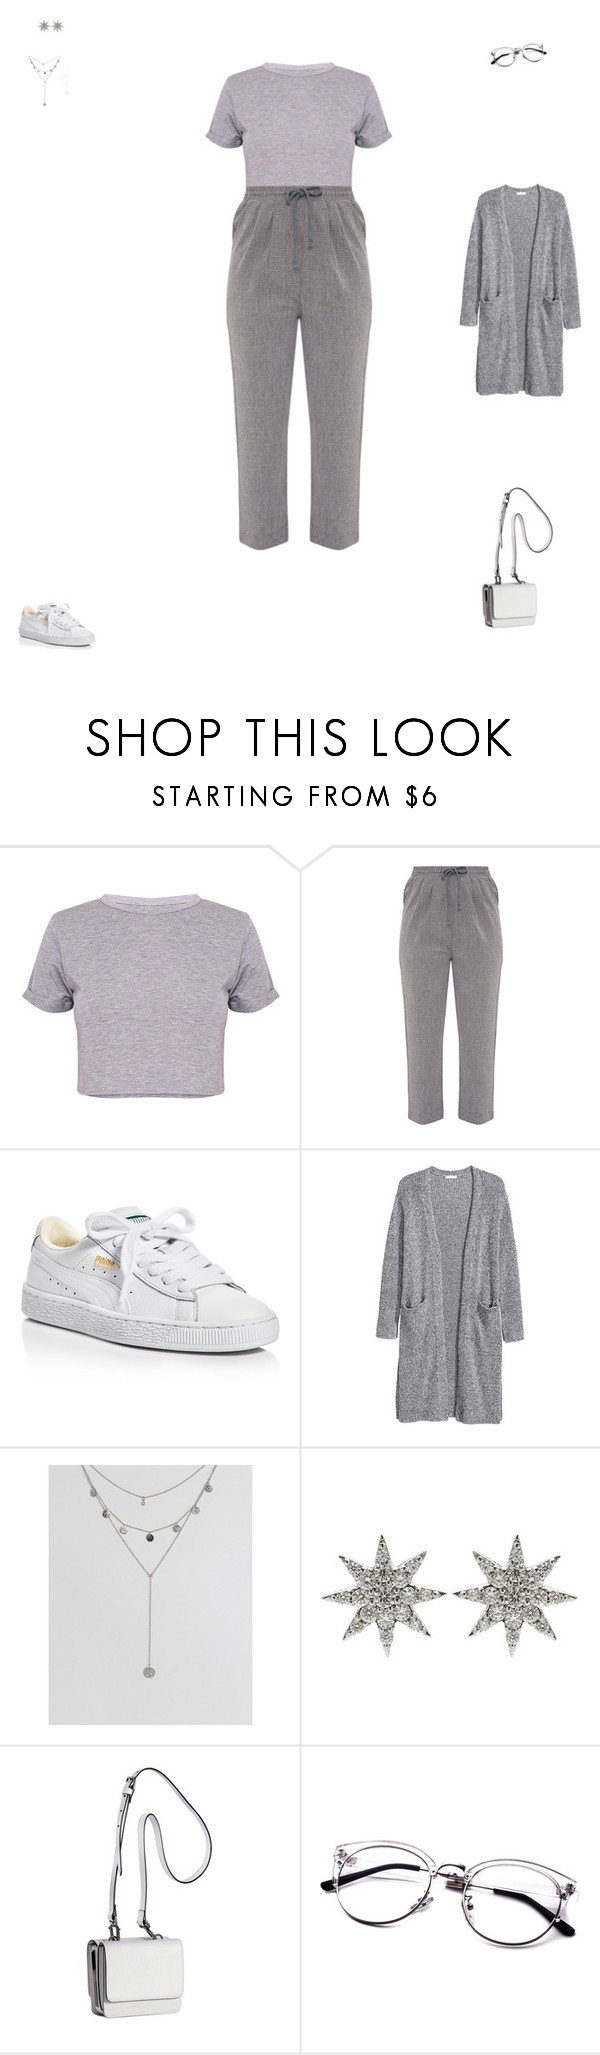 """""""#3"""" by kitten27 ❤ liked on Polyvore featuring BasicGrey, Diya, Puma, ASOS, Bee Goddess and Kendall + Kylie"""